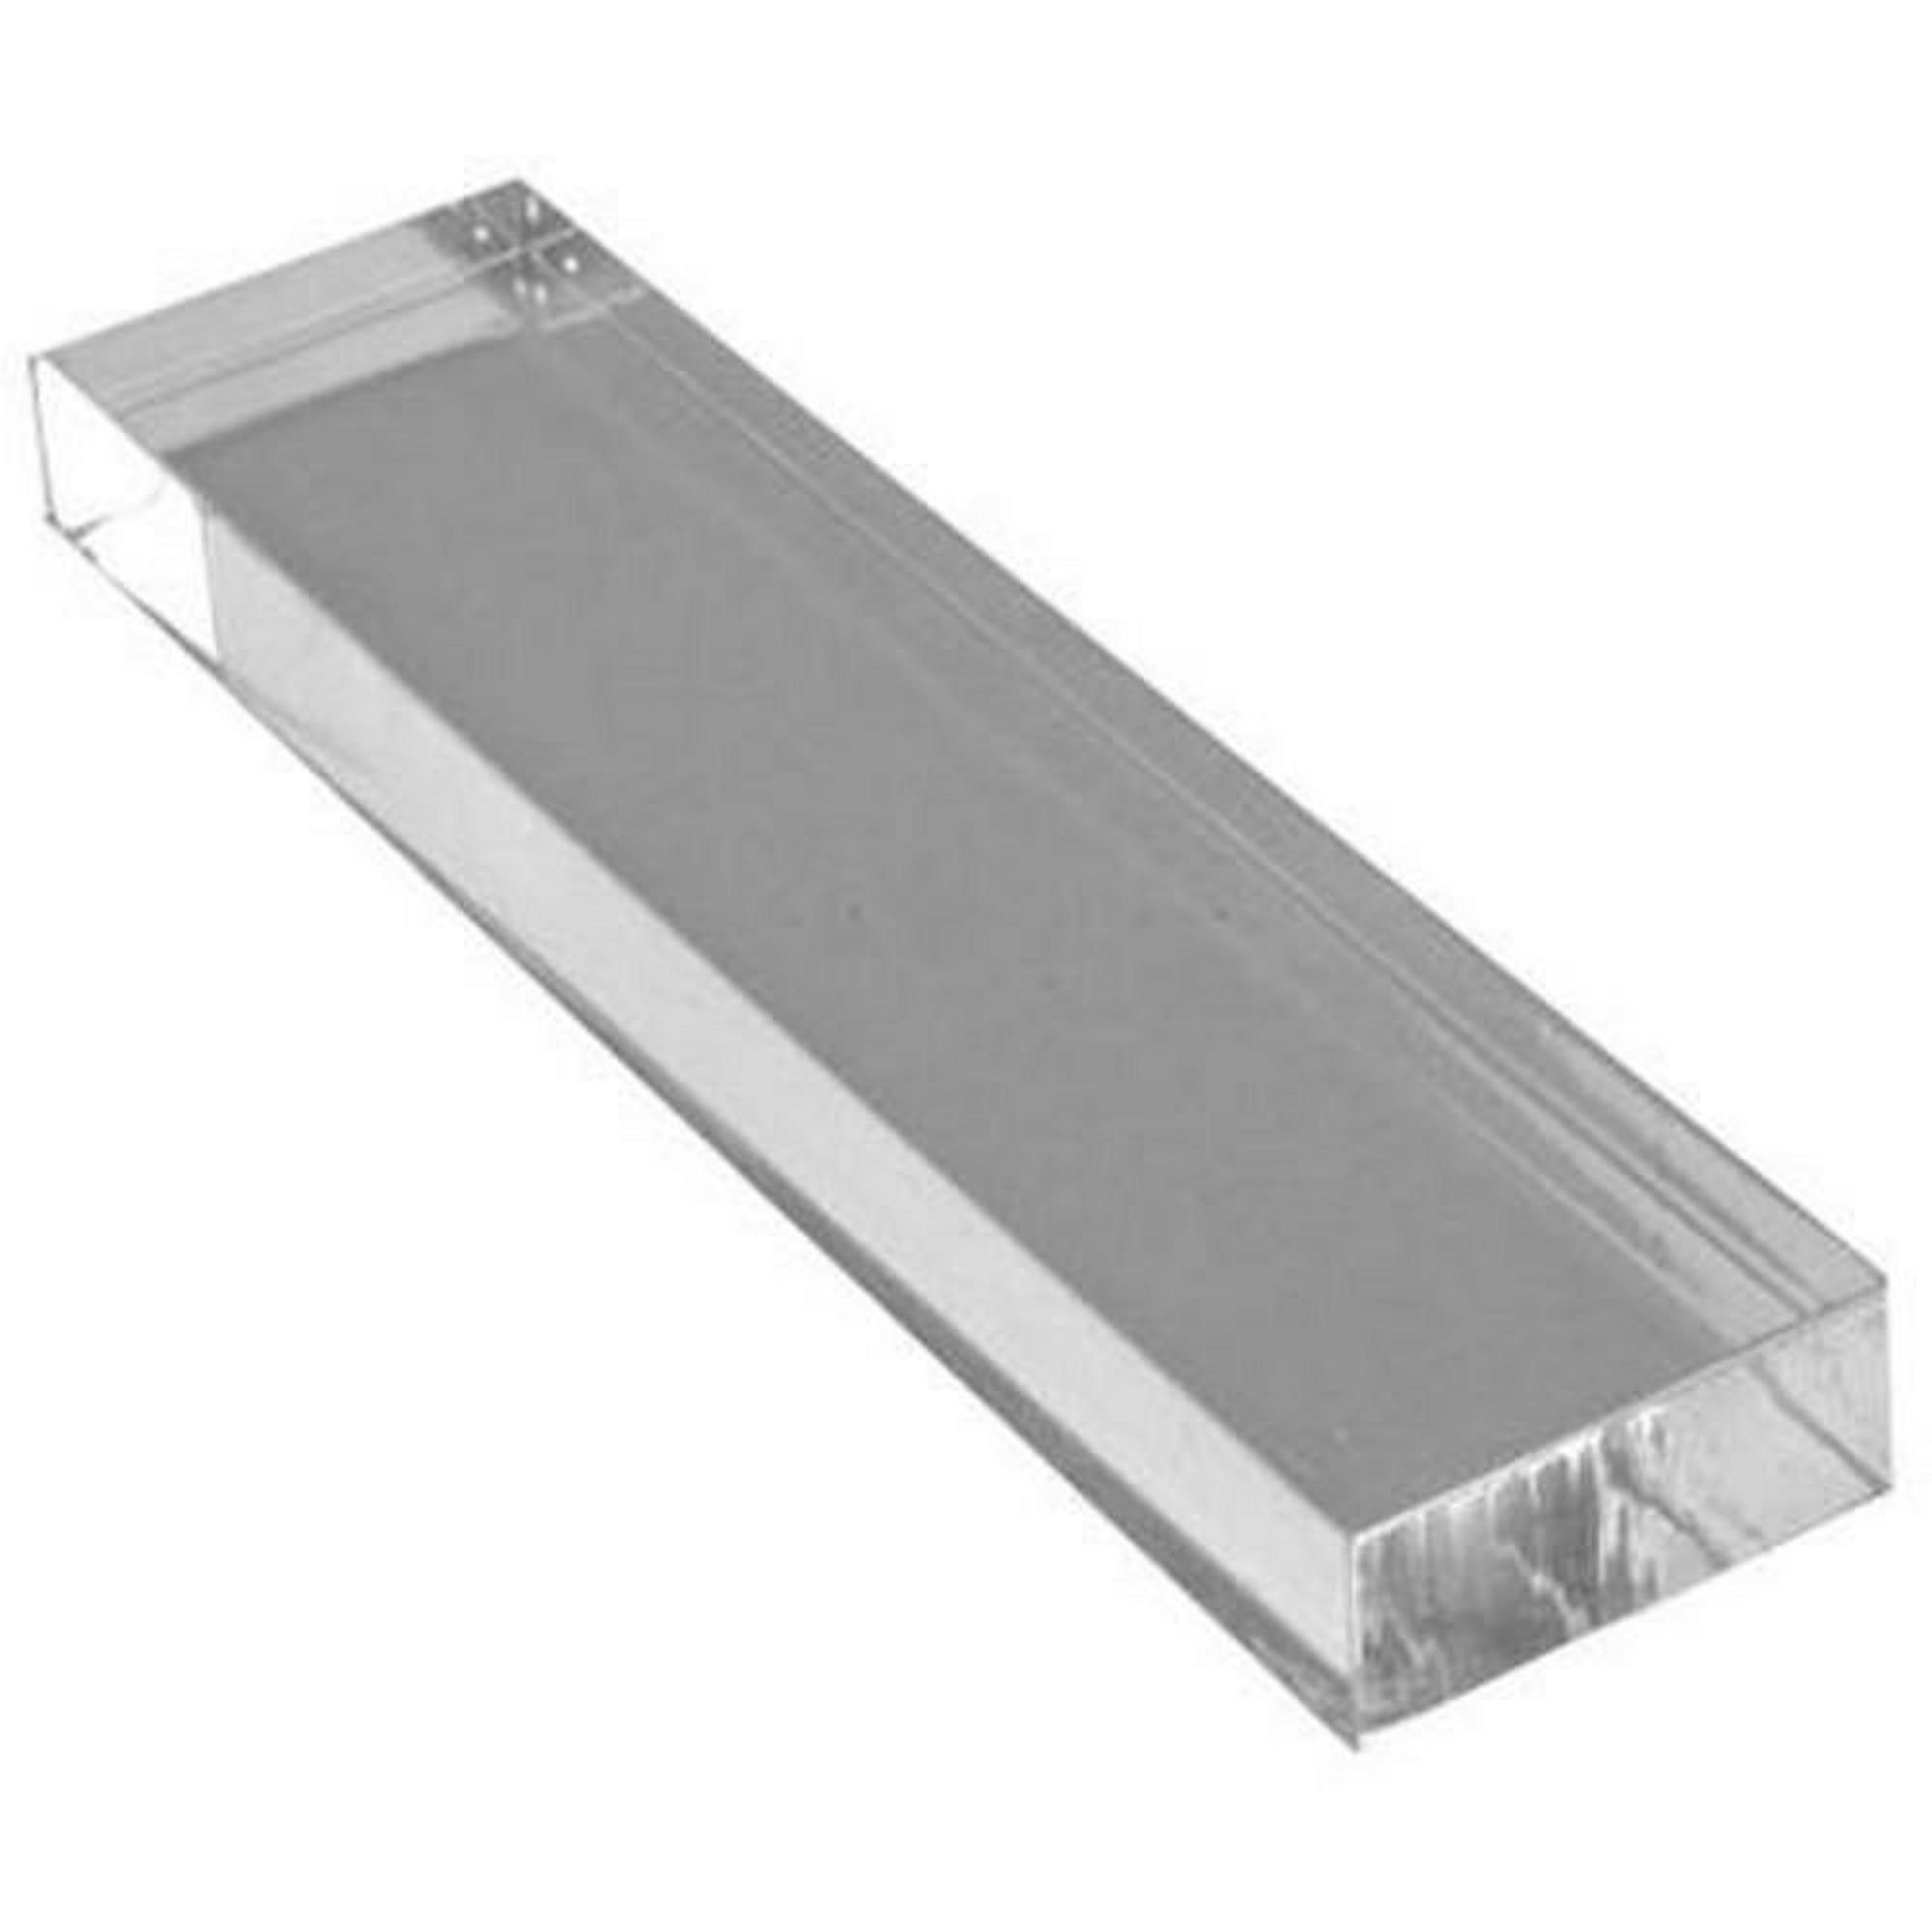 Clear Acrylic Stamp Block 25mm x 102mm x 10mm deep